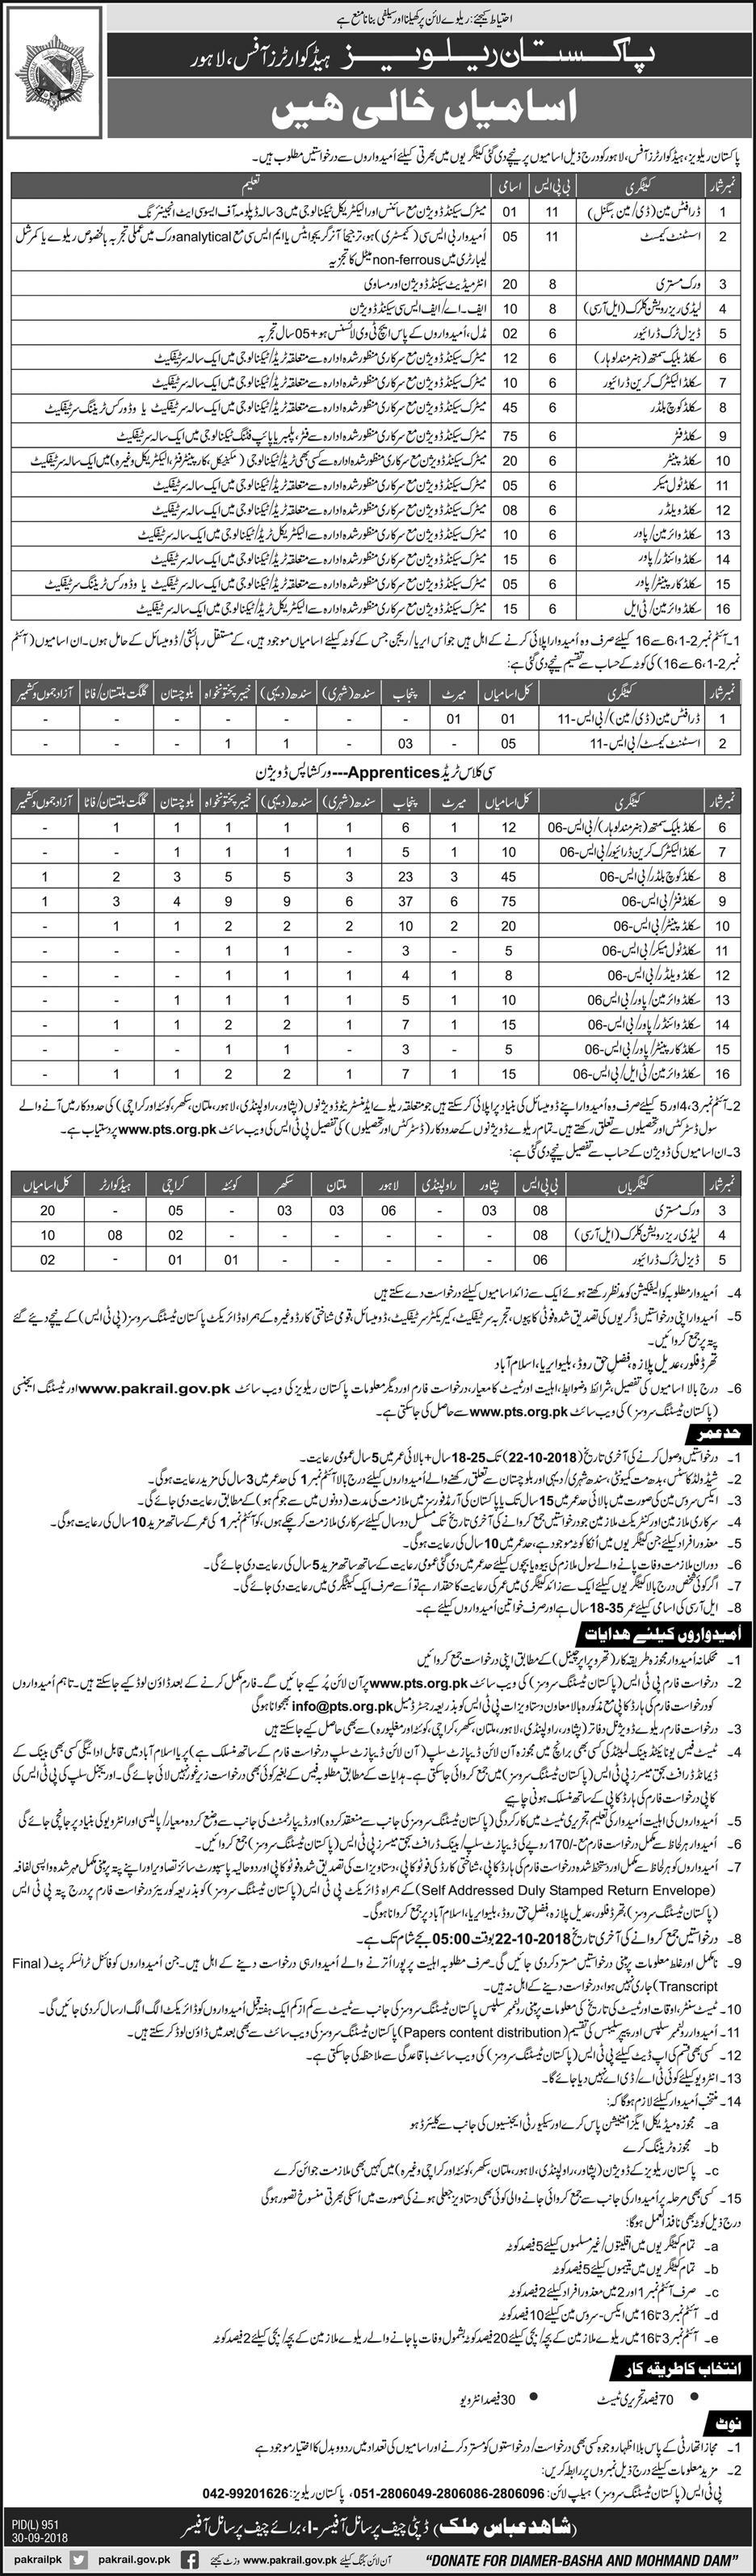 Pakistan Railways Jobs 2018 PTS Application Form Download Eligibility